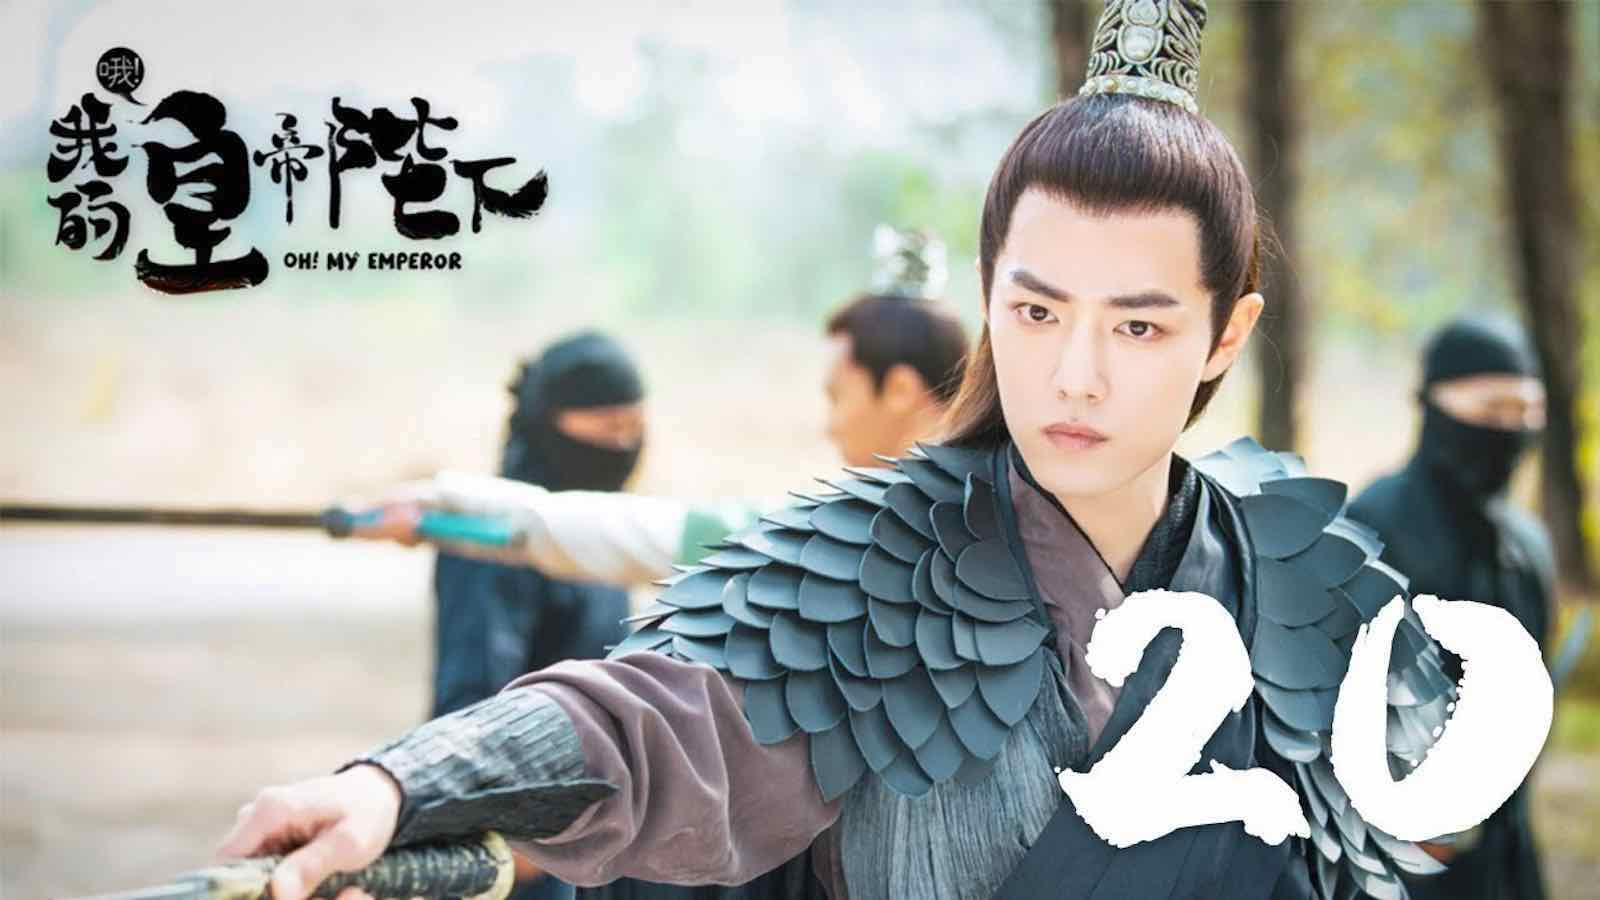 We know how much you're addicted to C-dramas after binging 'The Untamed' in a weekend. If you like the imperial genre, and Xiao Zhan, why not 'Joy of Life'!